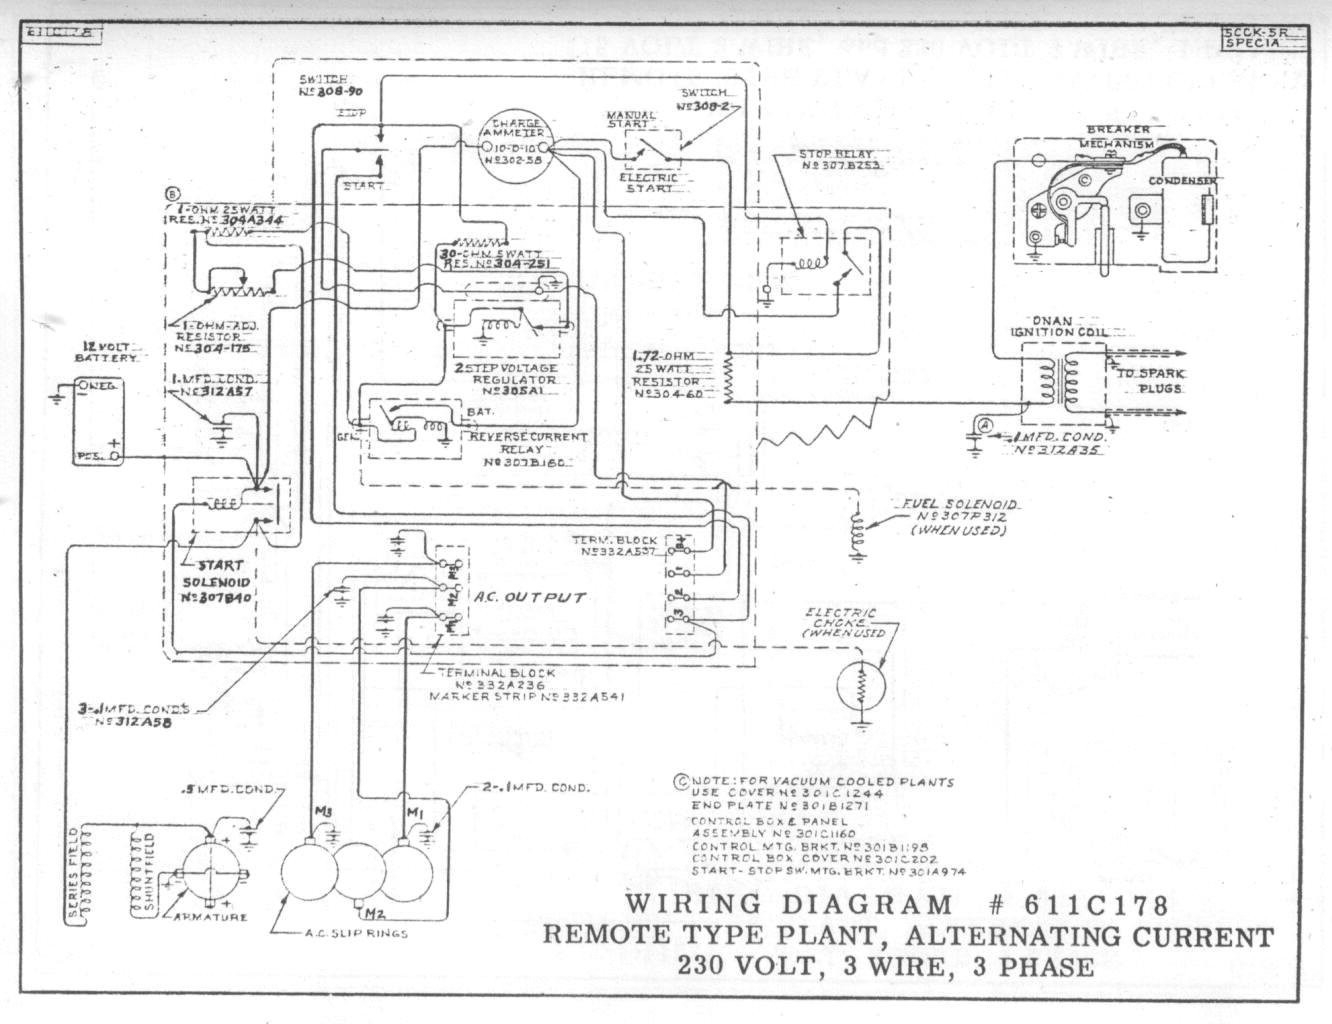 Remote Start Wiring Diagram For Generator Wiring Diagram